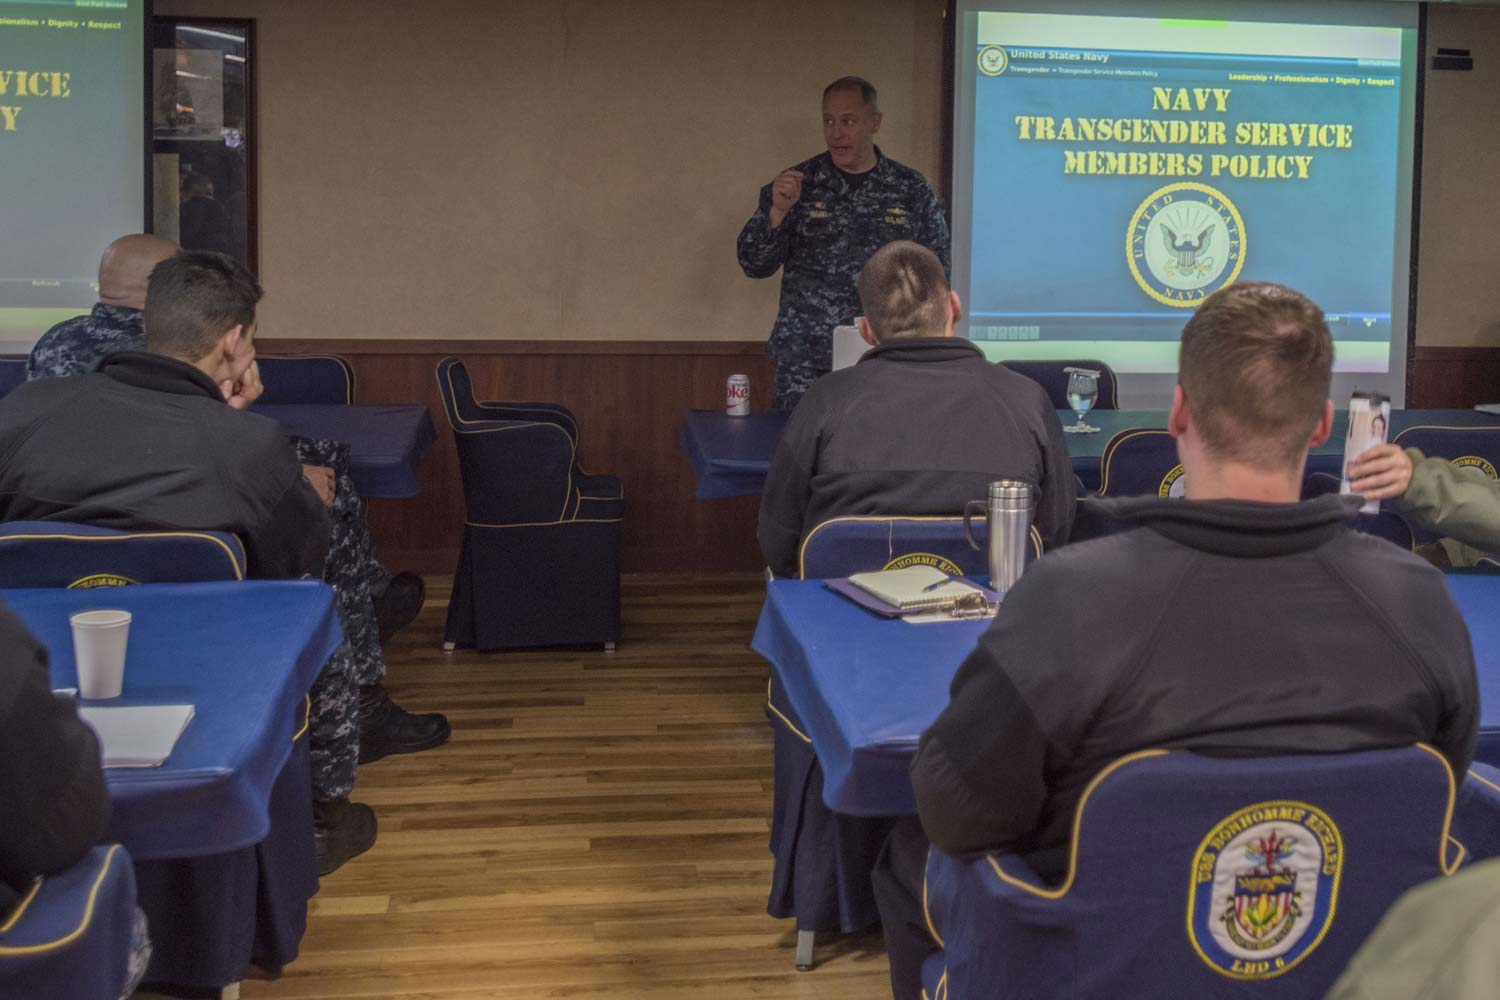 Navy weight requirements at a glance military capt jeffrey ward commanding officer of the uss bonhomme richard facilitates transgender training nvjuhfo Choice Image